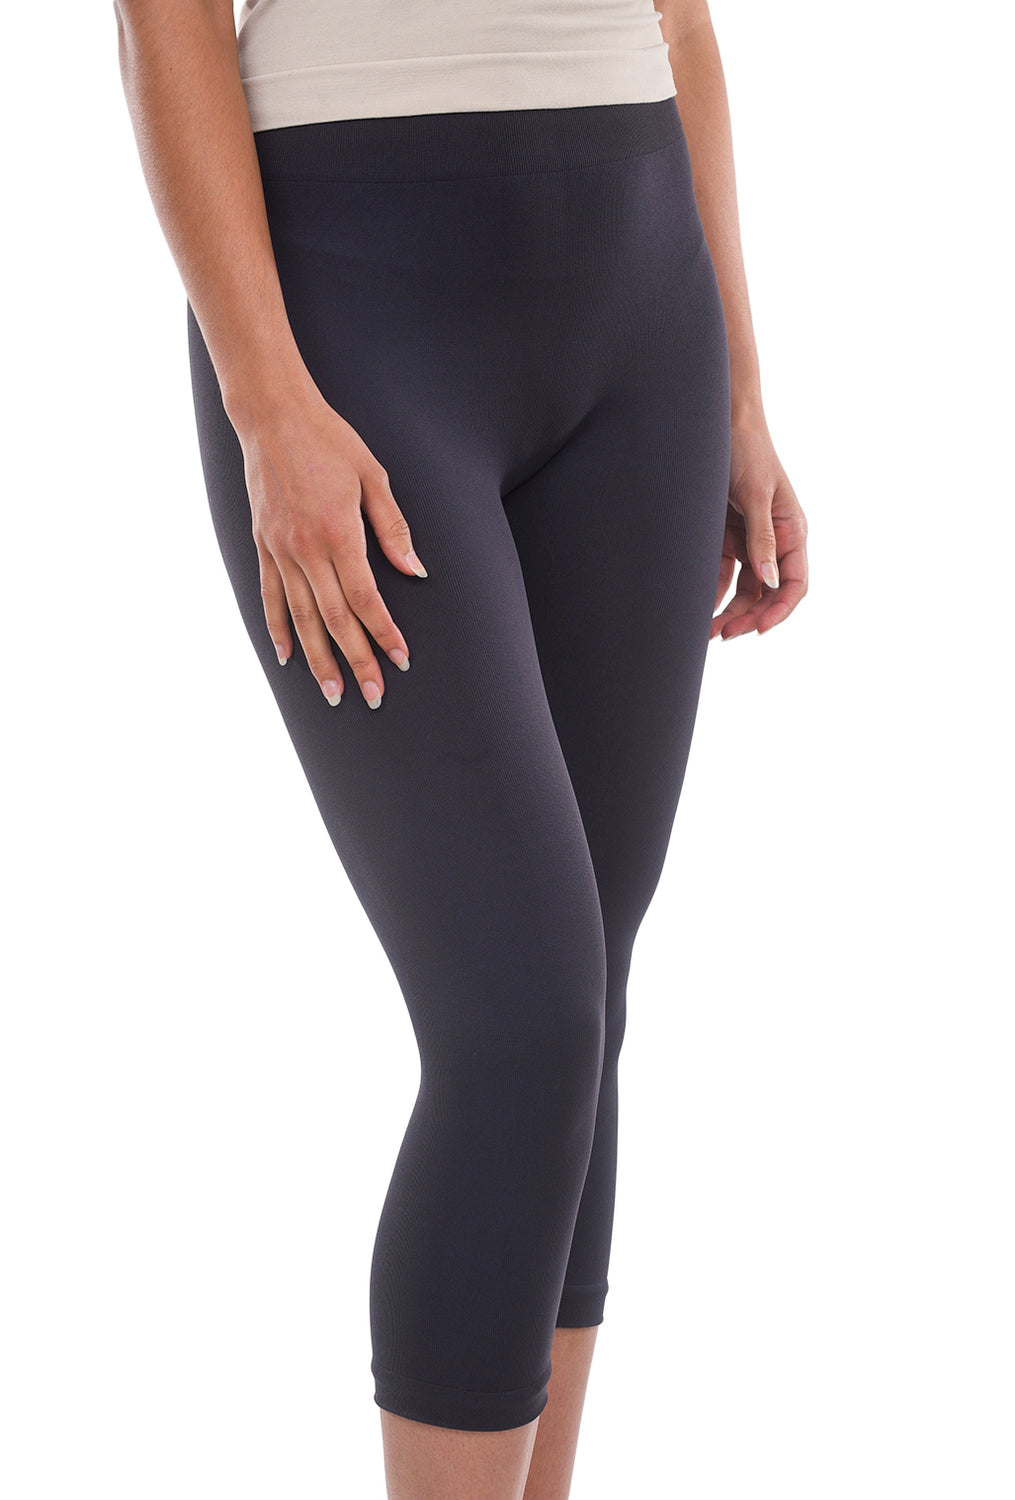 Tees by Tina MicroRib Capri Leggings, Storm Gray One Size Storm Gray